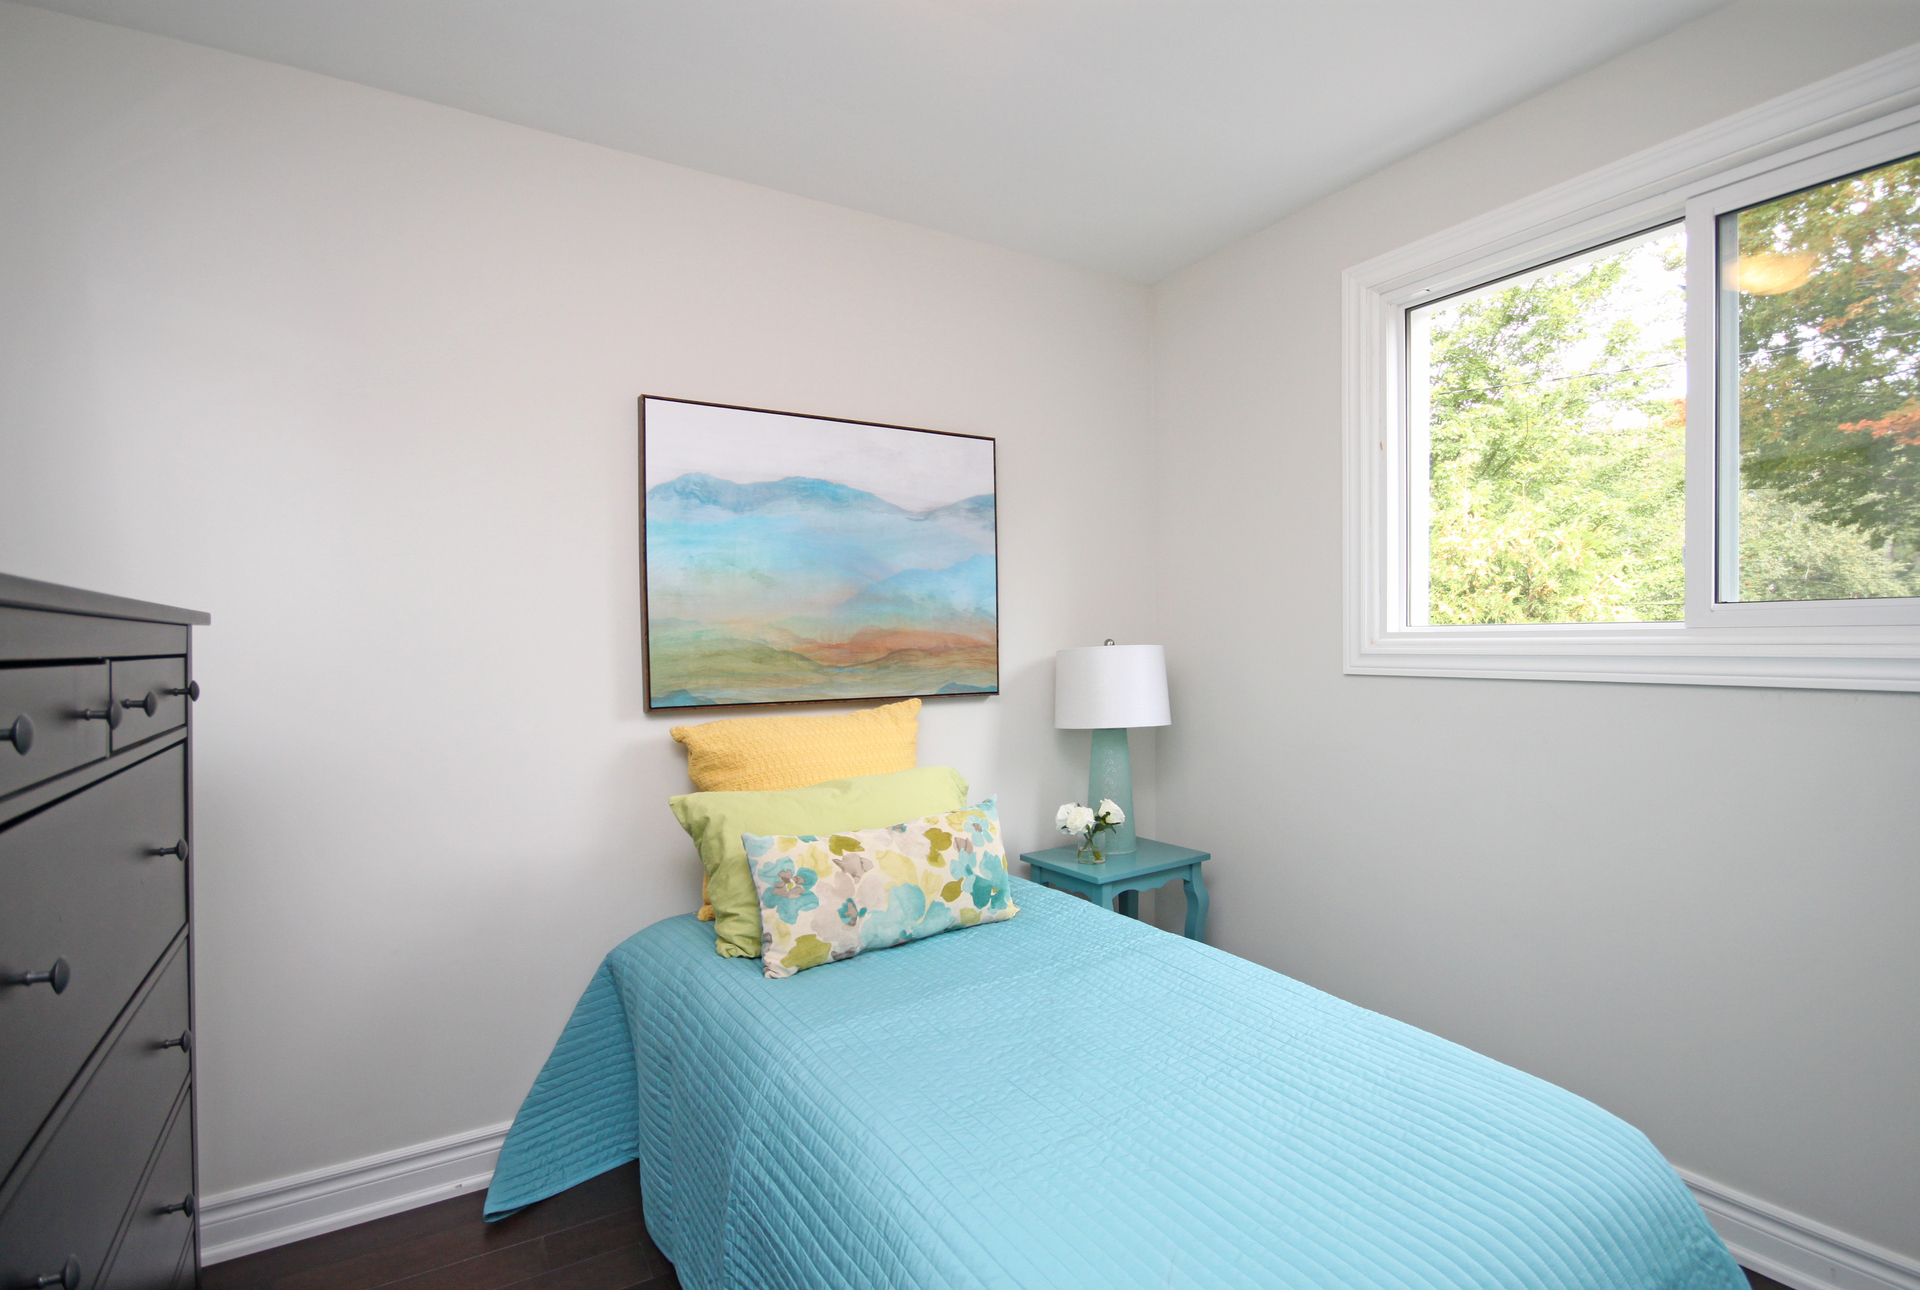 Bedroom at 165 Three Valleys Drive, Parkwoods-Donalda, Toronto